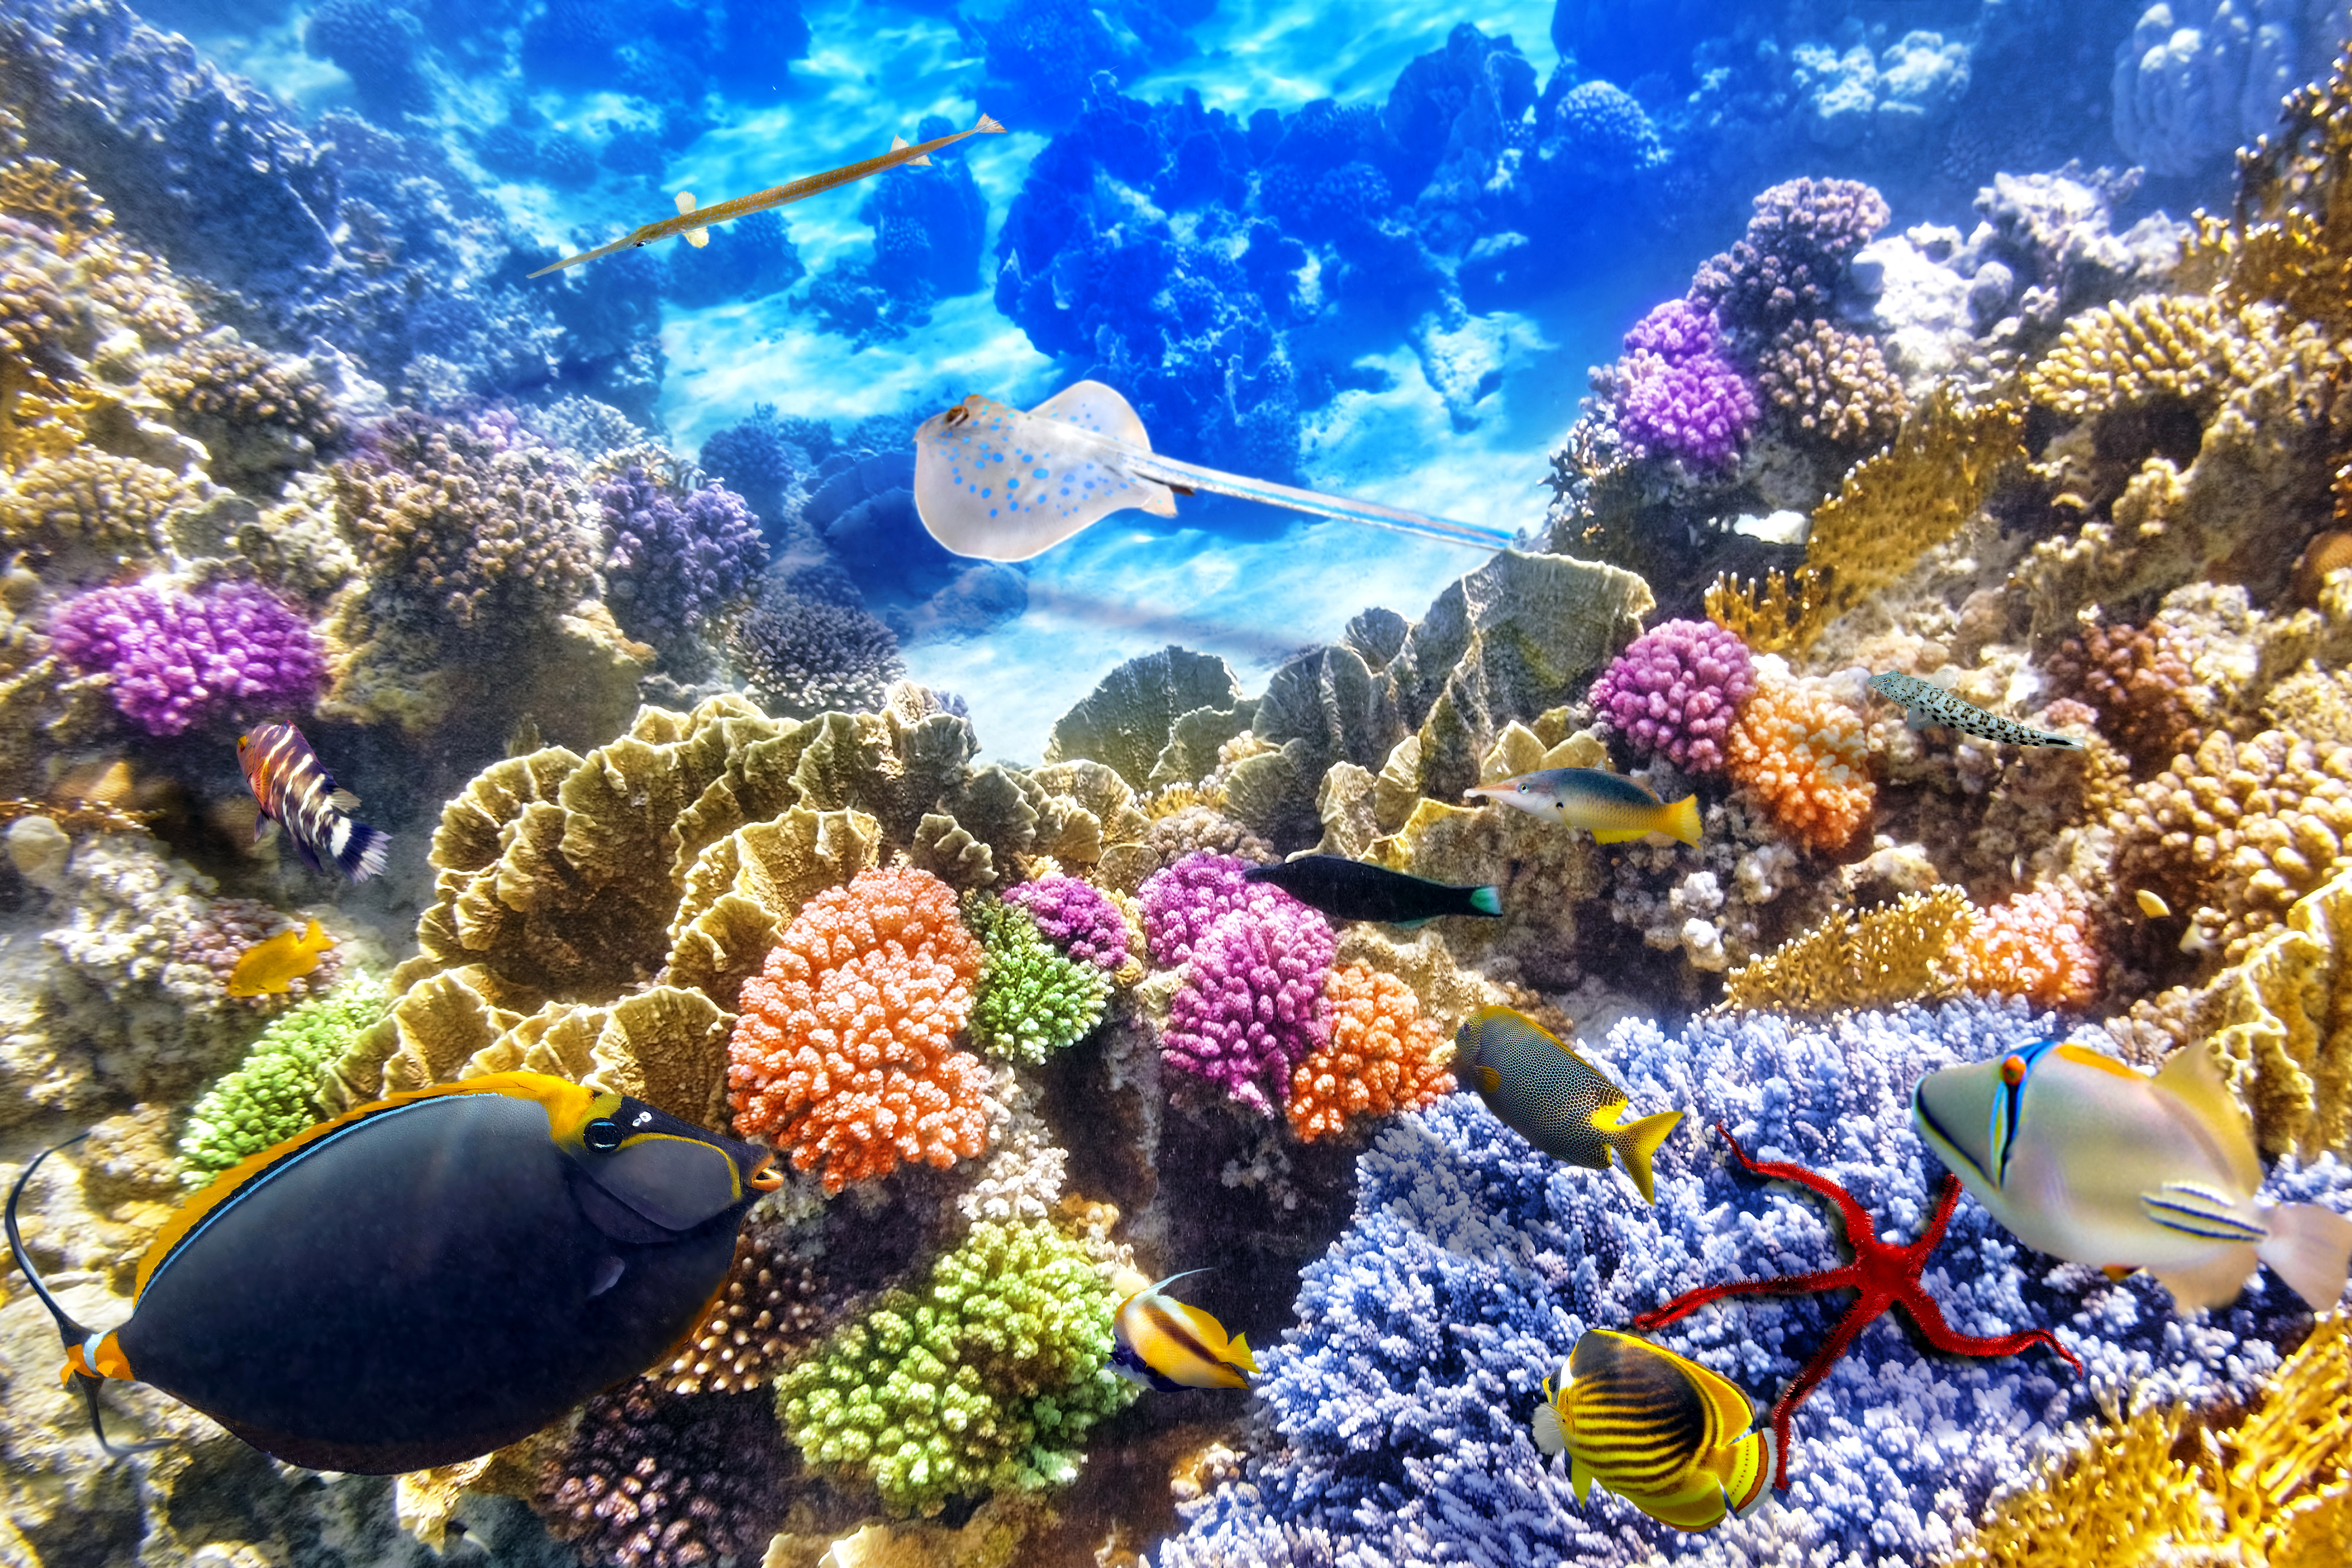 Under The Sea 5k Retina Ultra HD Wallpaper And Background Image